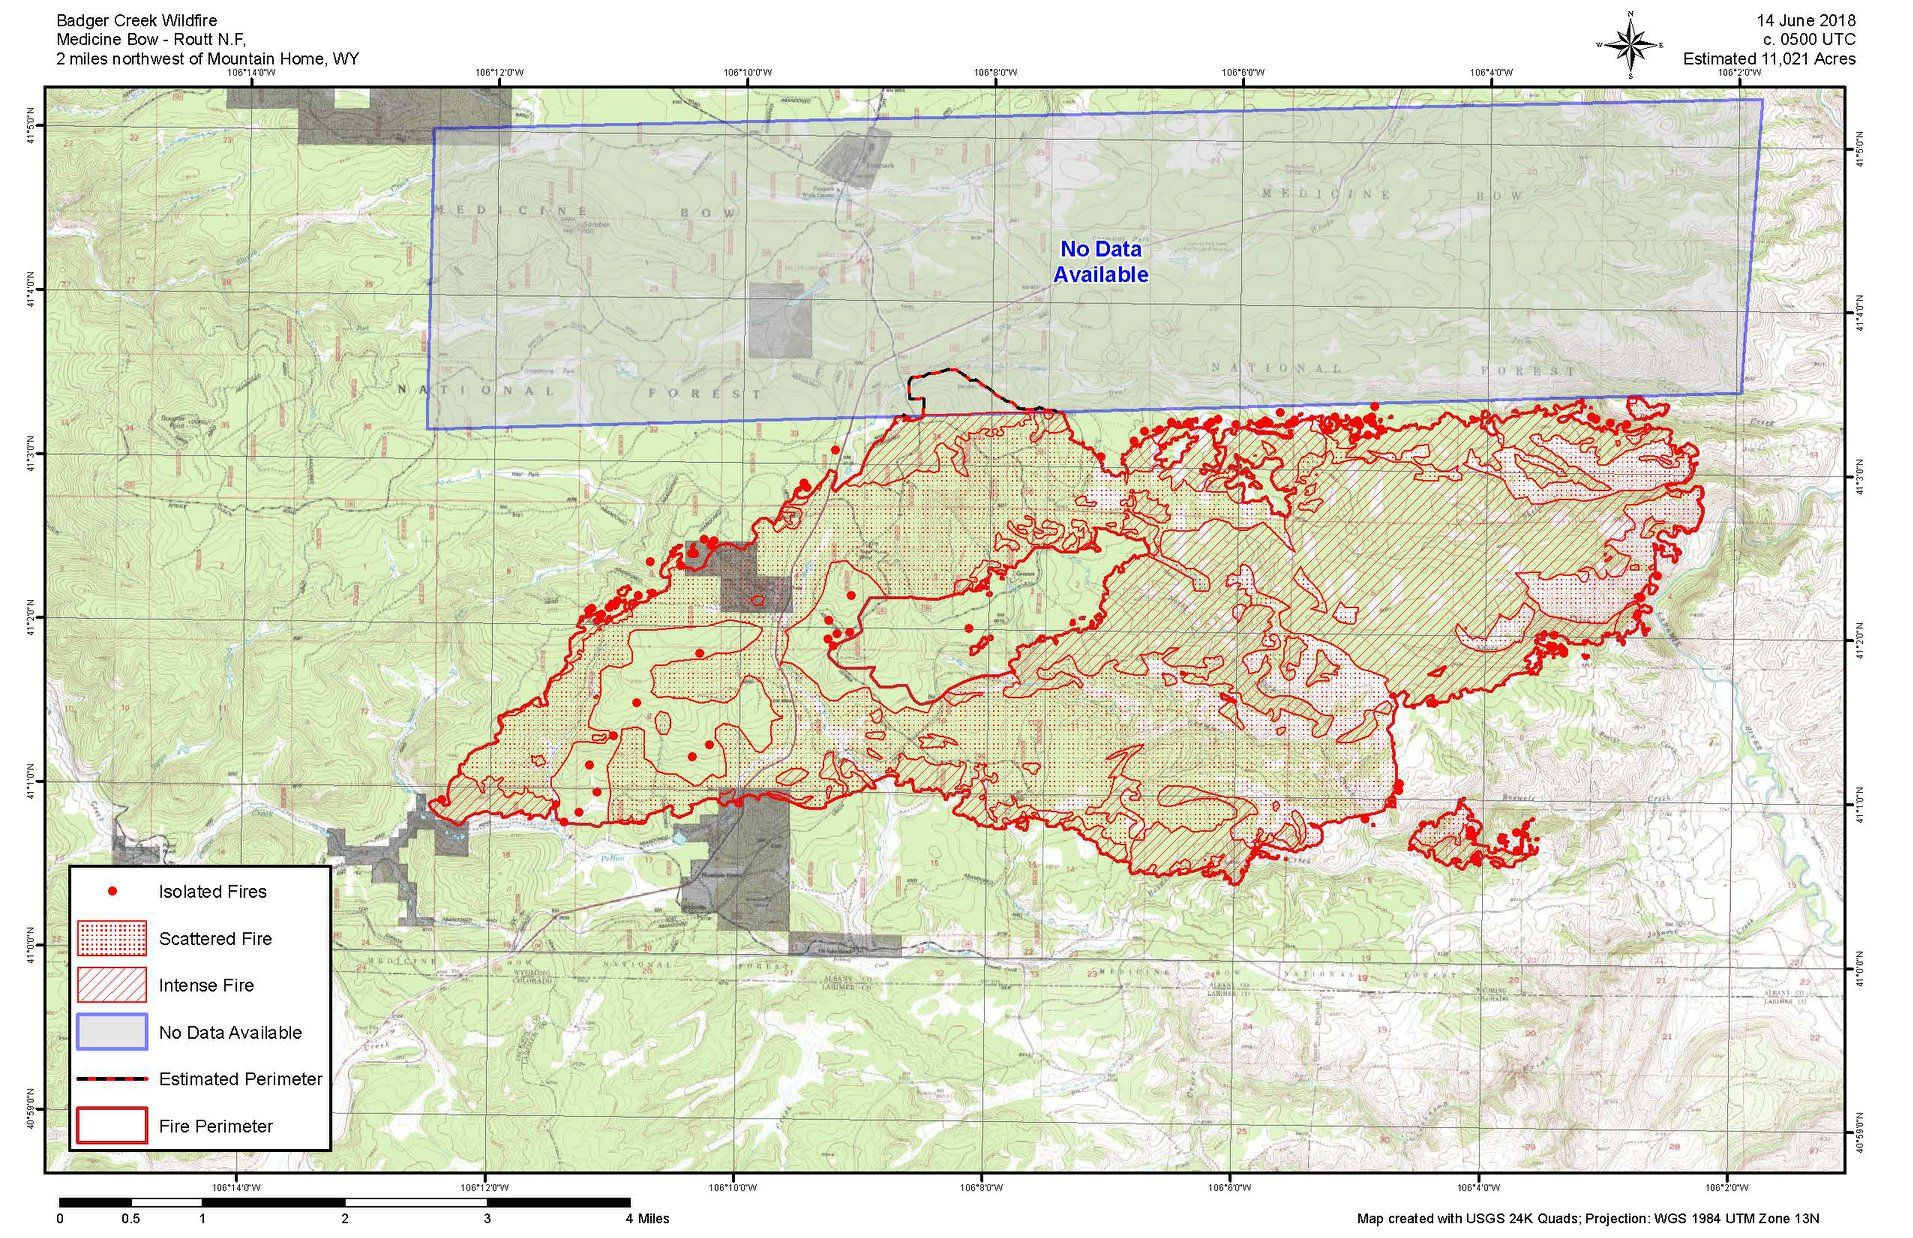 Wyoming Badger Creek Fire Update: Map, Blaze Doubles in Size